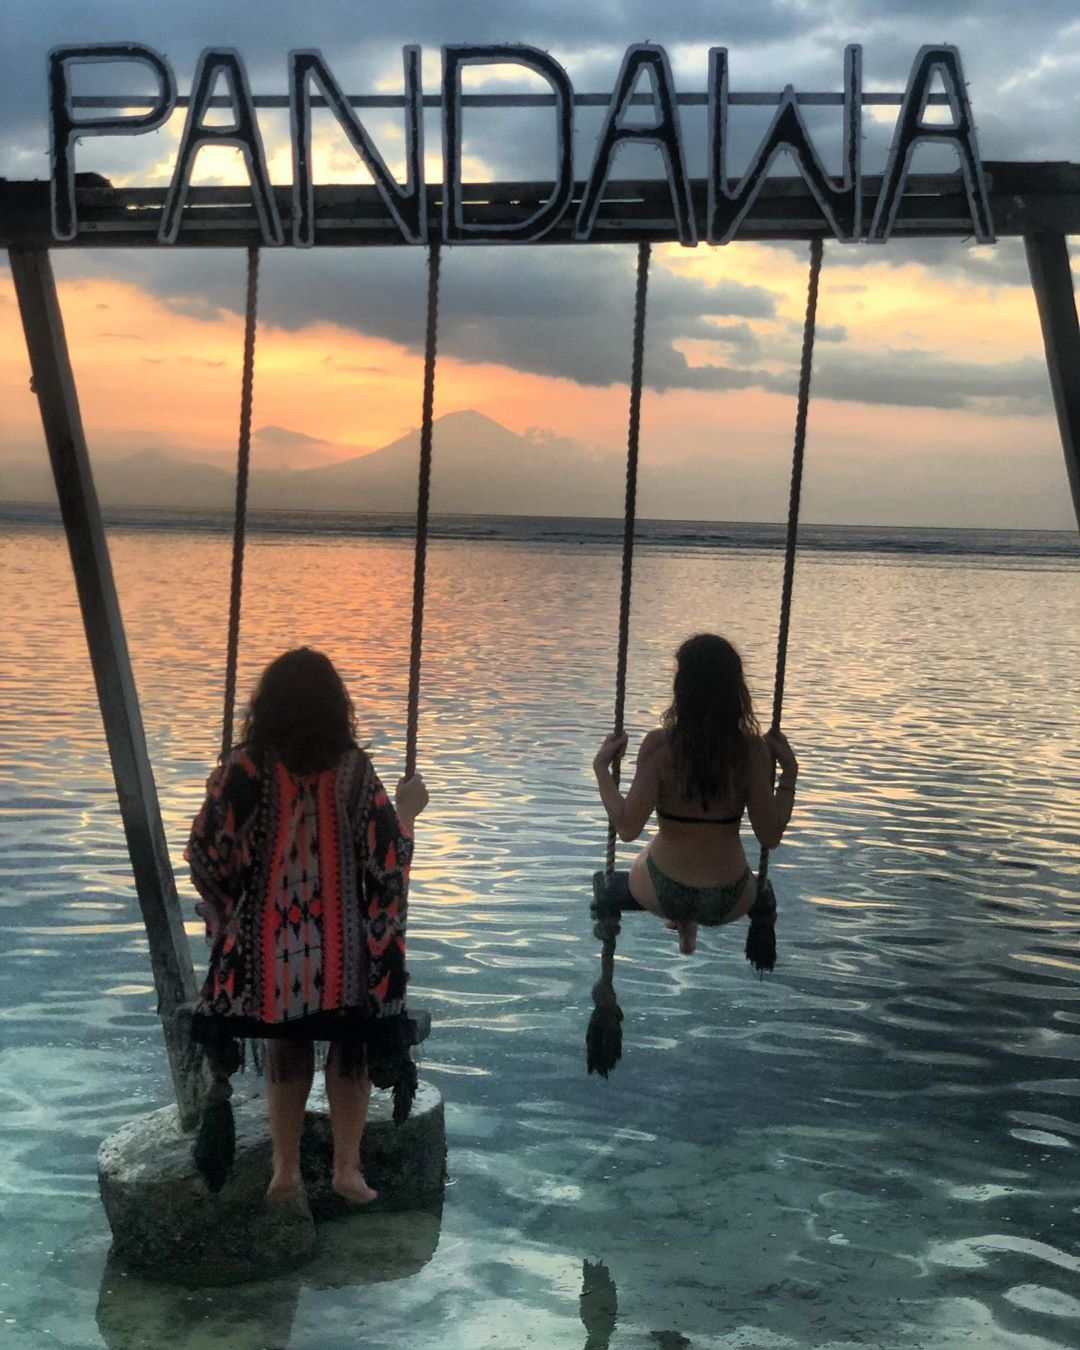 Sunset in Gili Island 🇮🇩 #giliisland#2019#bali#indonesia#friends#trip#travel#sunset#nofilter#ocean#indian#swing#girl#picture#photography#instamoment#instaday#instapic#instatrip#happy#life#love#cool